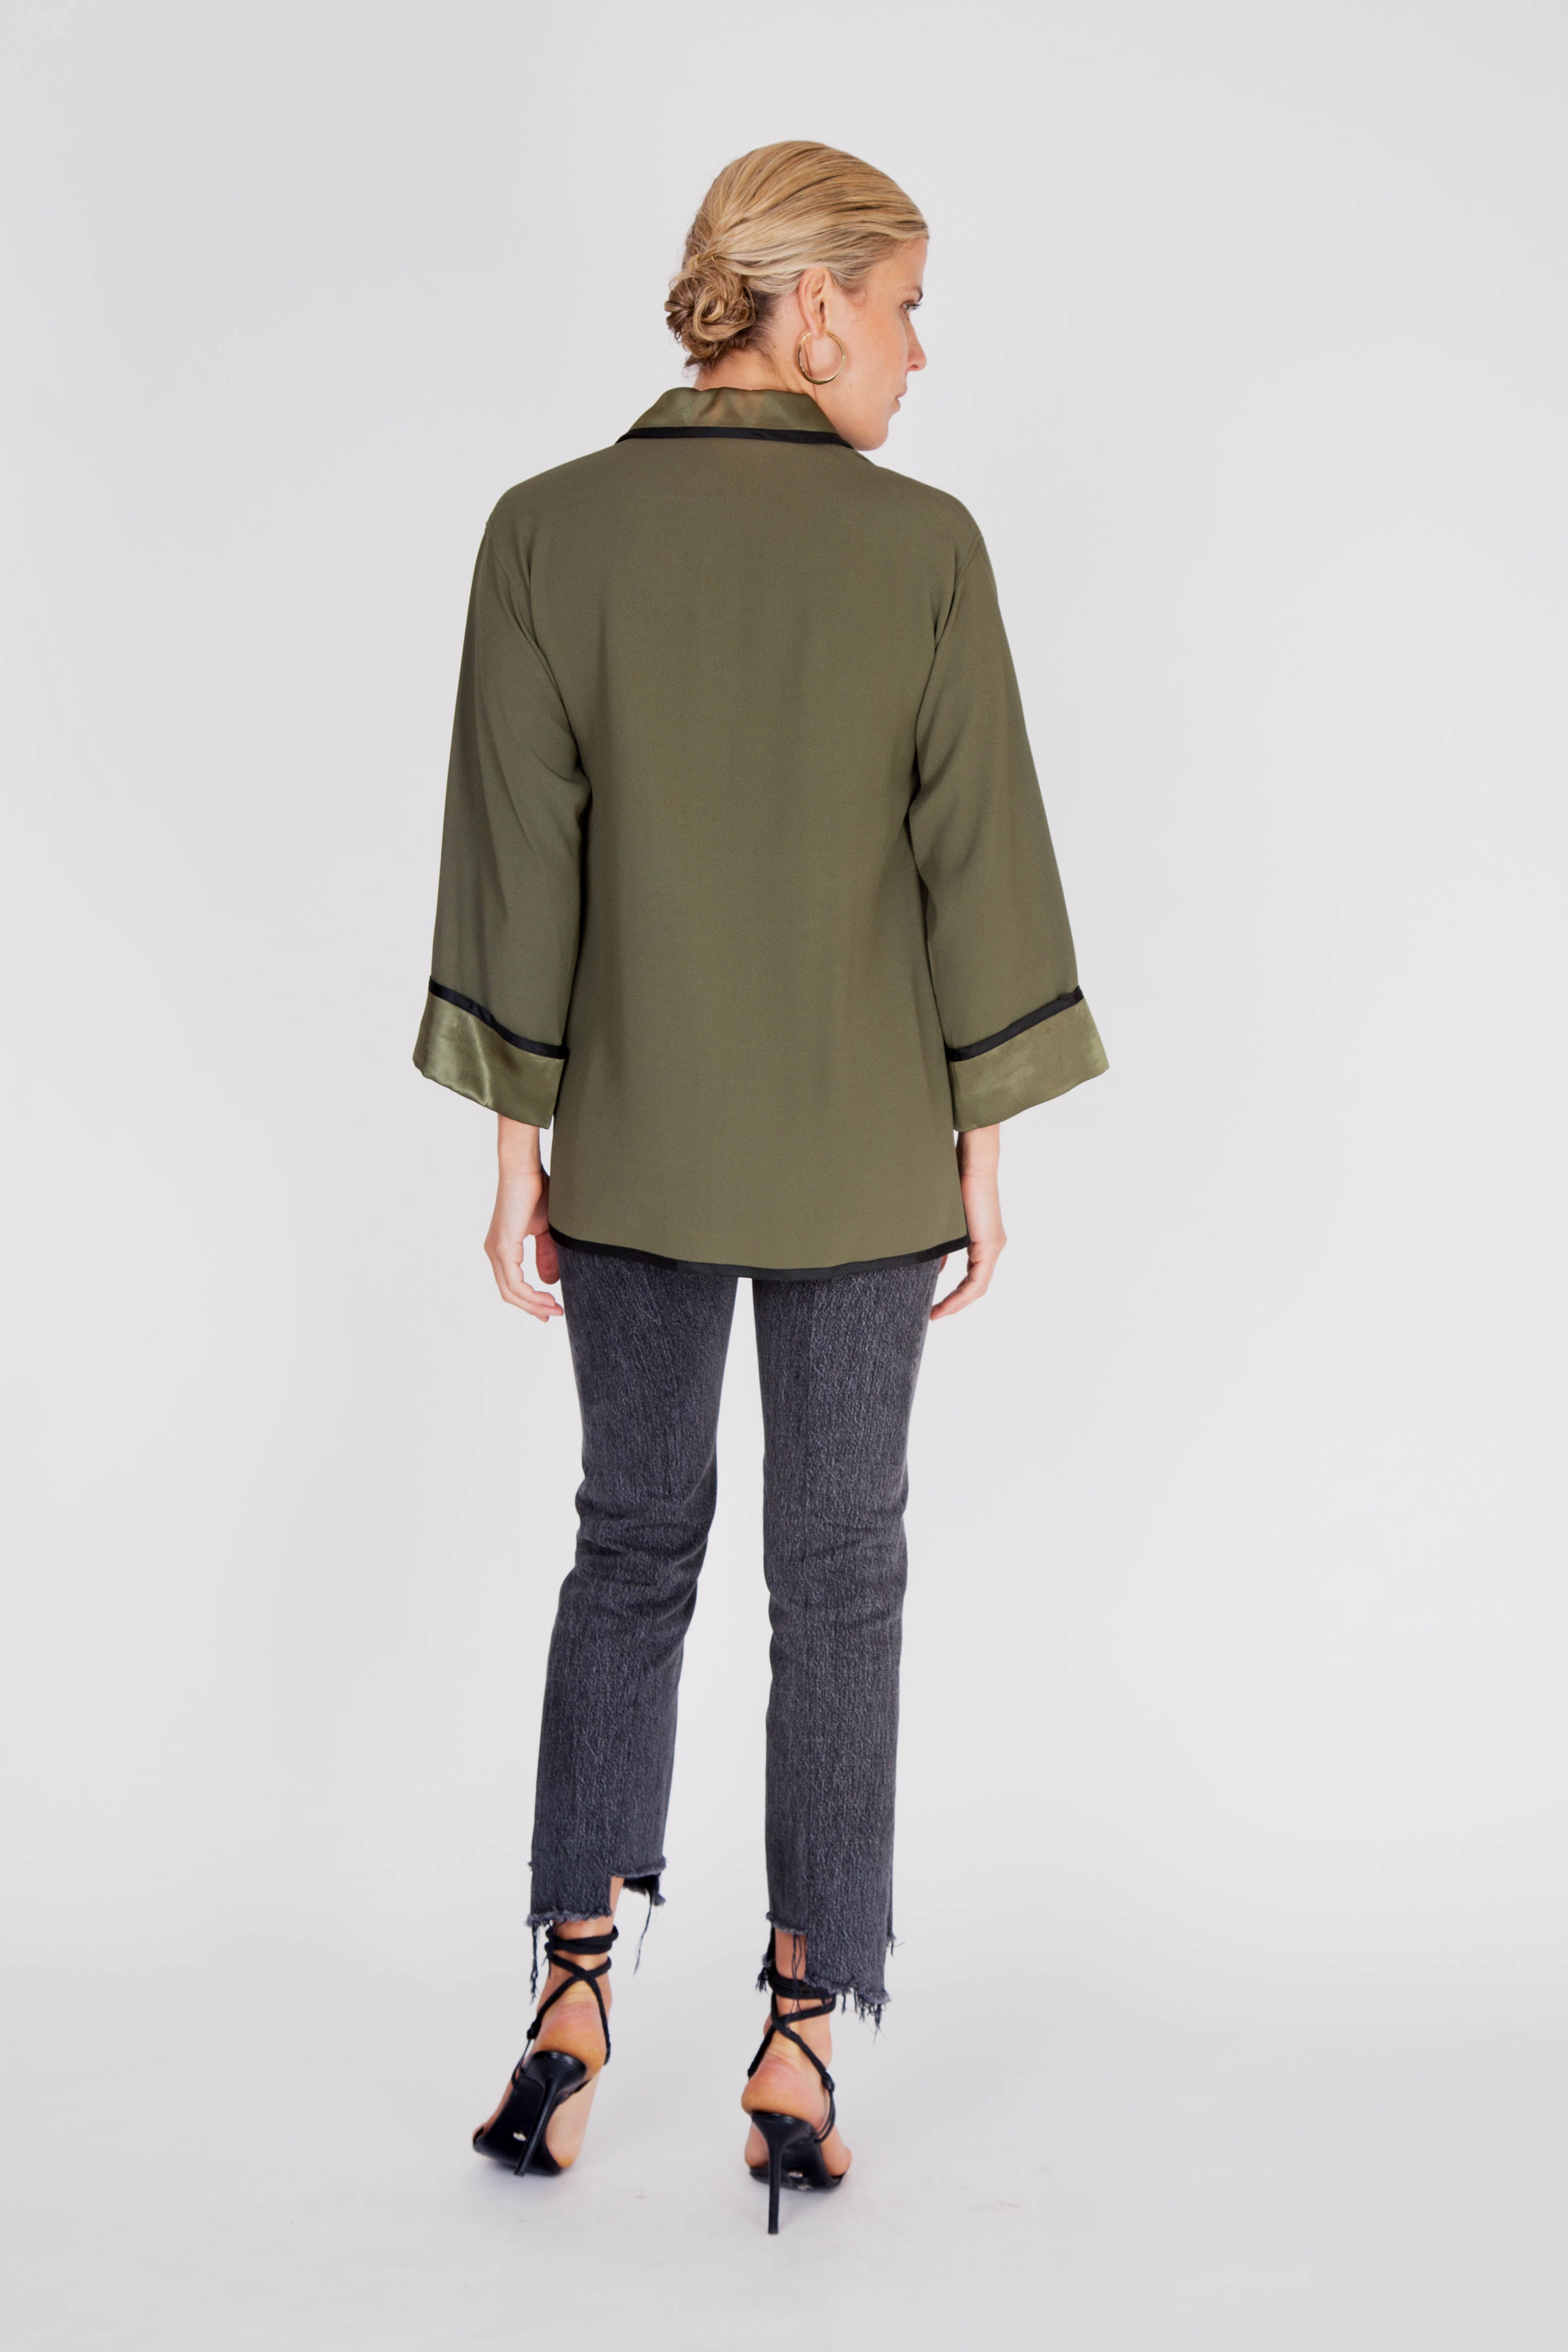 Yves Saint Laurent <br> 1970's YSL olive green button down tunic